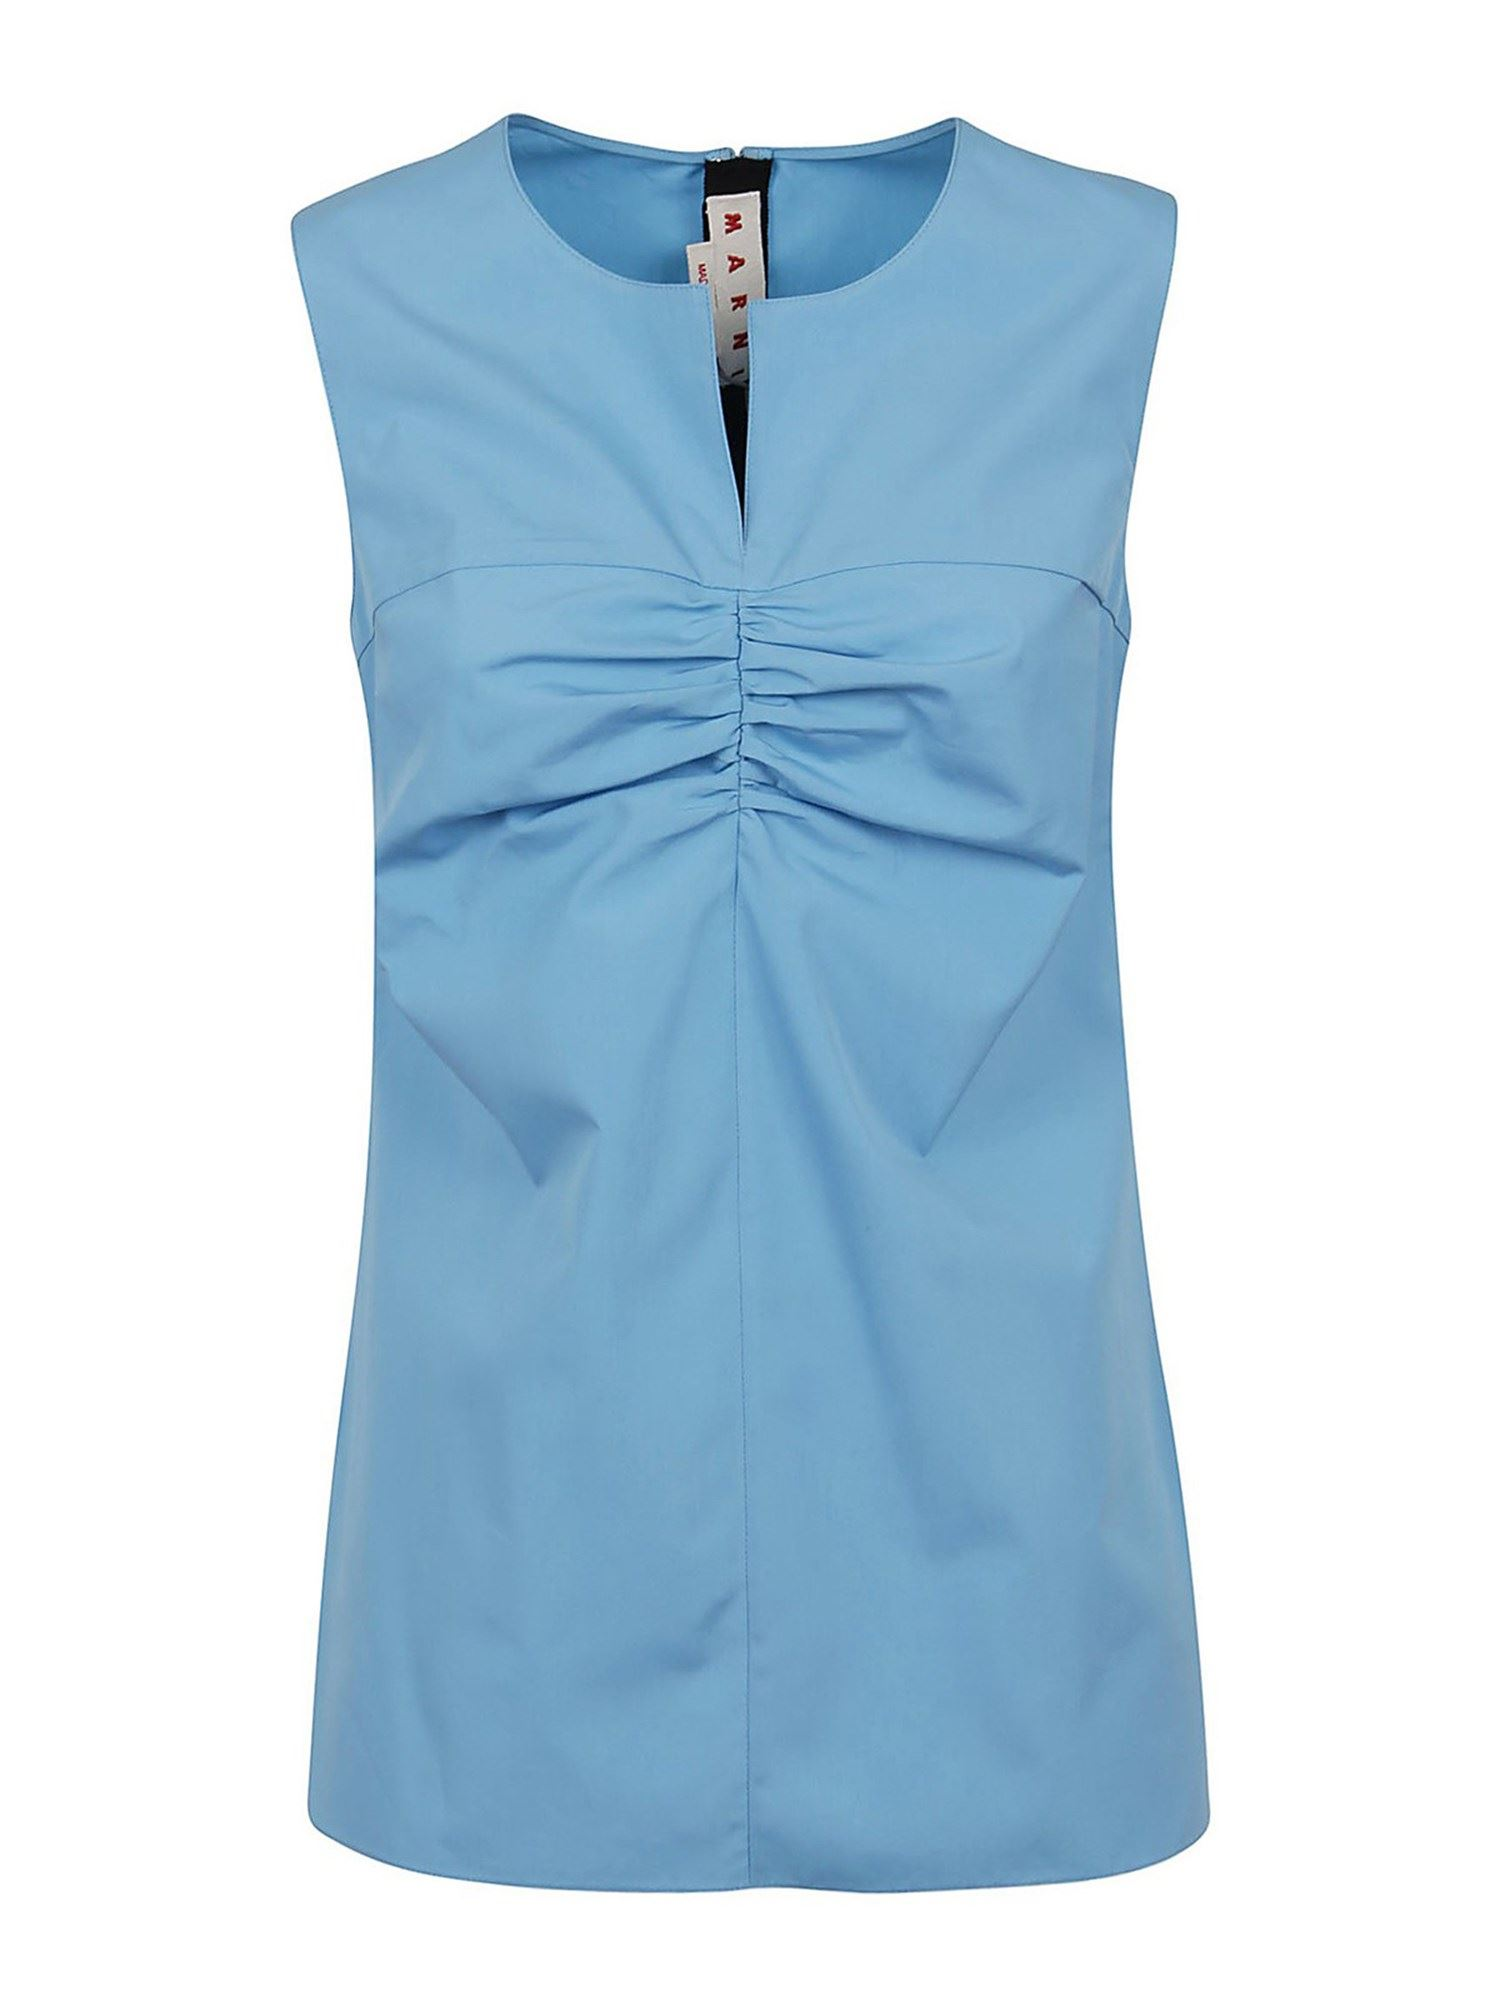 Marni RUCHED COTTON TOP IN LIGHT BLUE